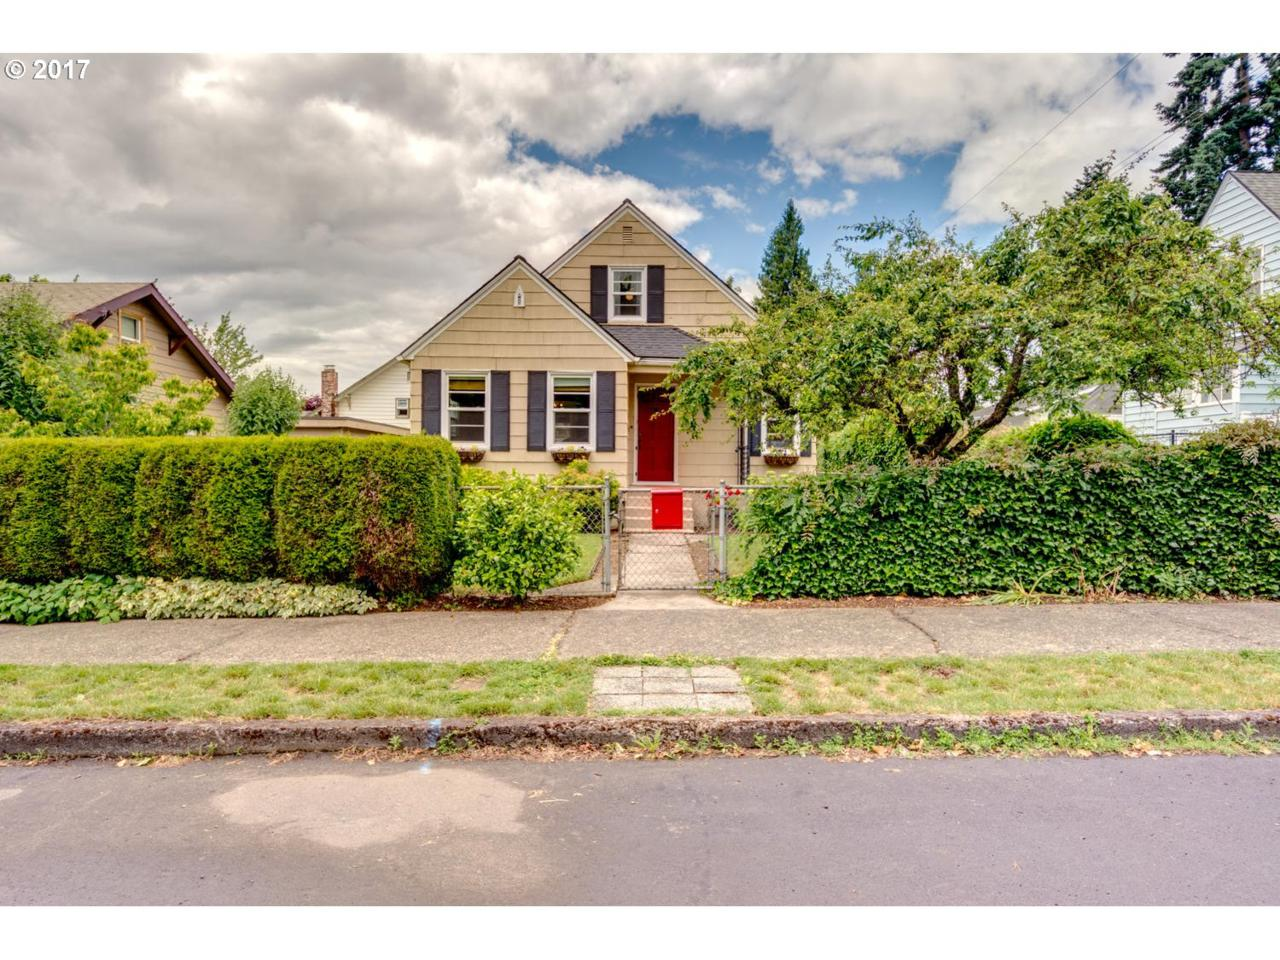 2704 Grant St, Vancouver, WA 98660 (MLS #17542734) :: The Dale Chumbley Group